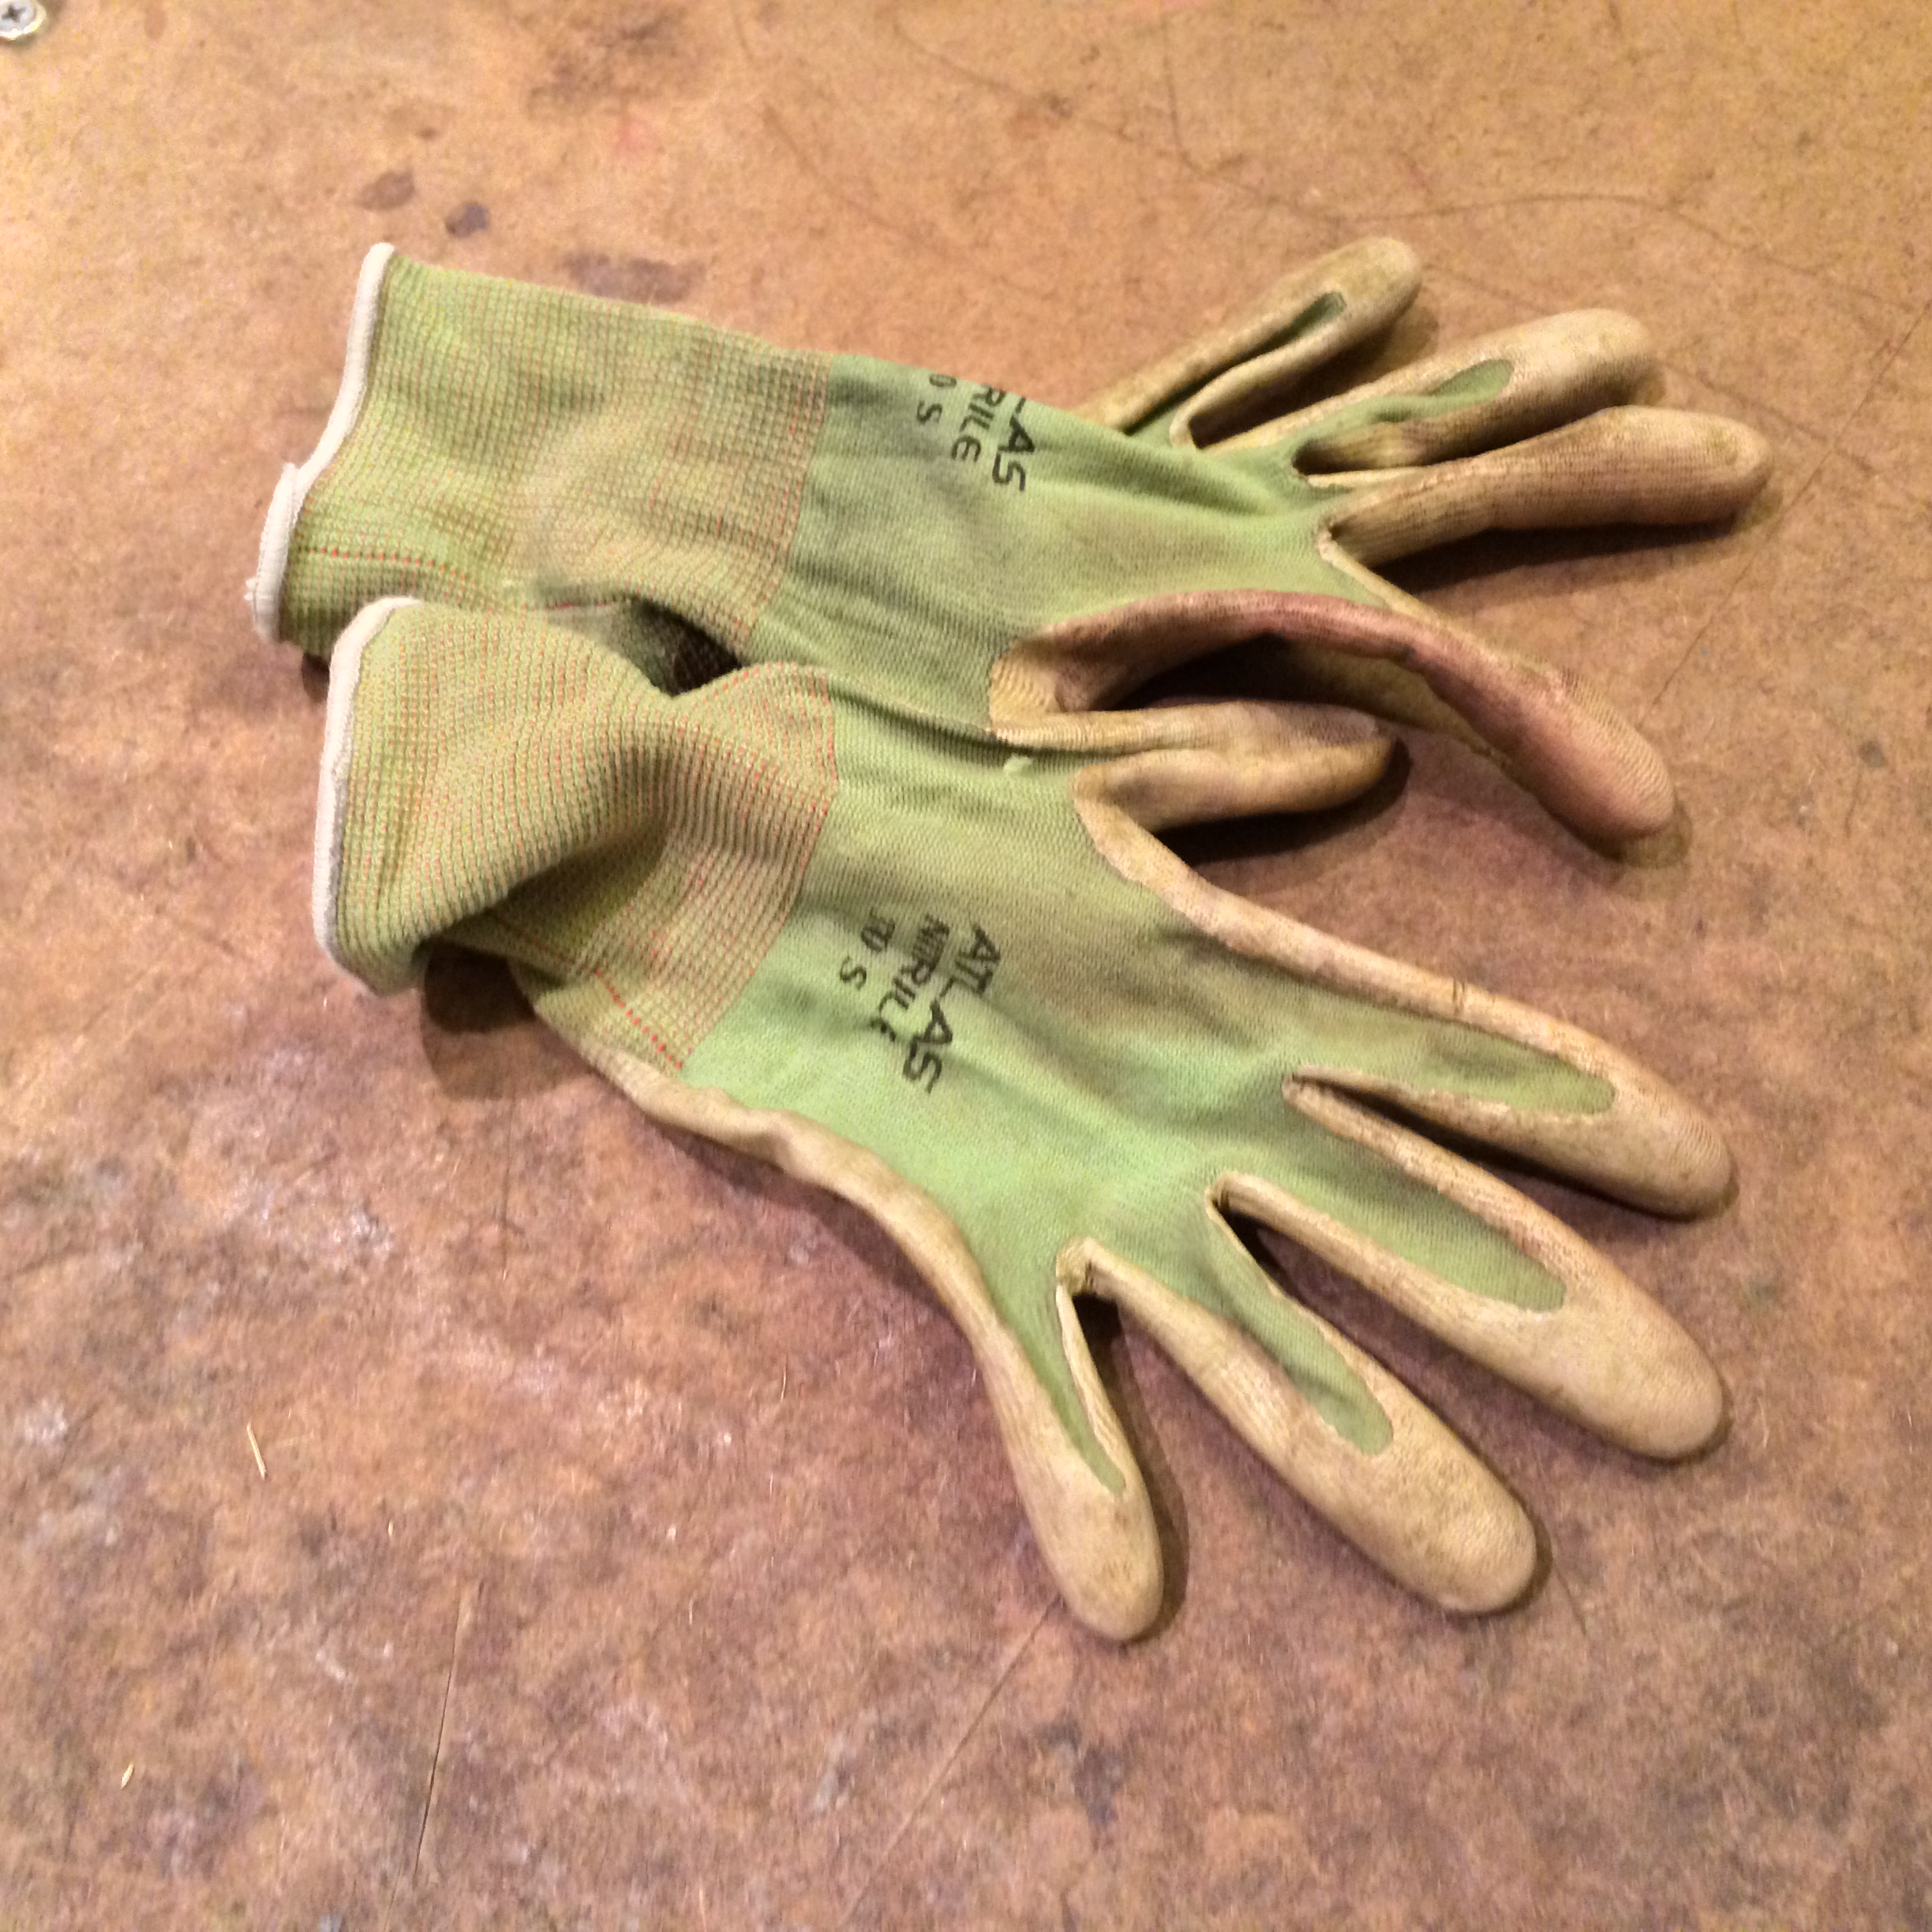 Disgusting gloves to protect from thorns and decaying matter. And insects.